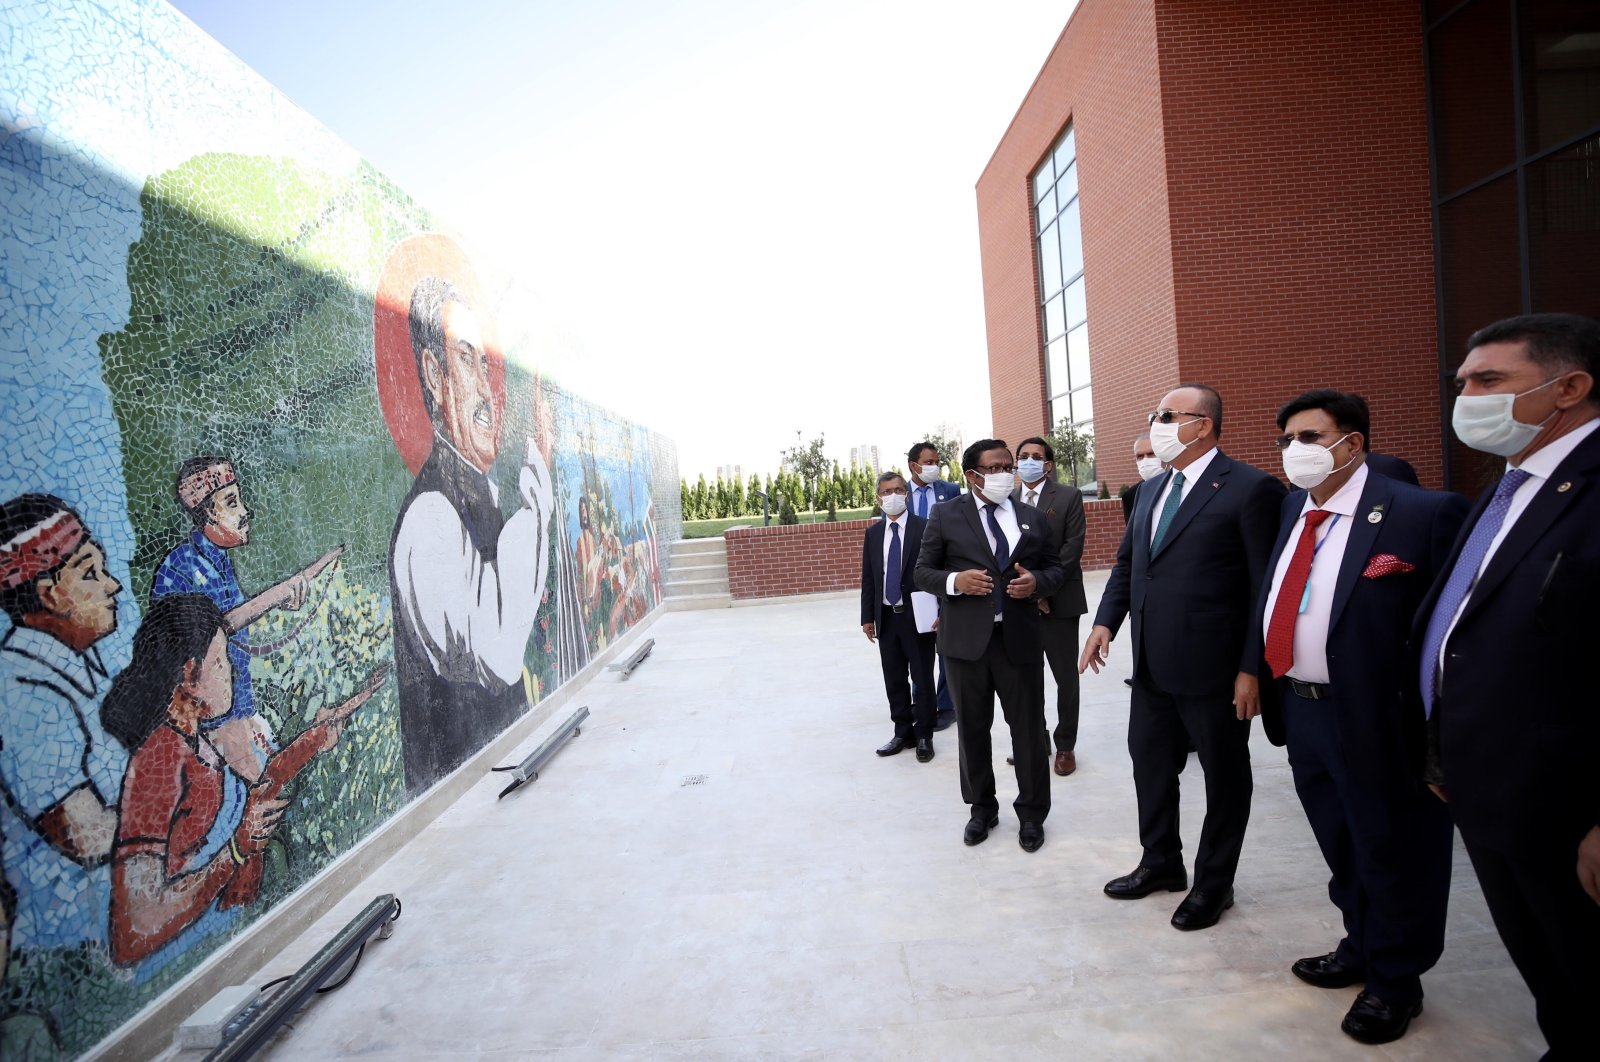 Foreign Minister Mevlüt Çavuşoğlu and his Bangladeshi counterpart A.K. Abdul Momen tour the newly established embassy of Bangladesh in Ankara, Turkey, following the inauguration ceremony, Sept. 14, 2020. (AA Photo)